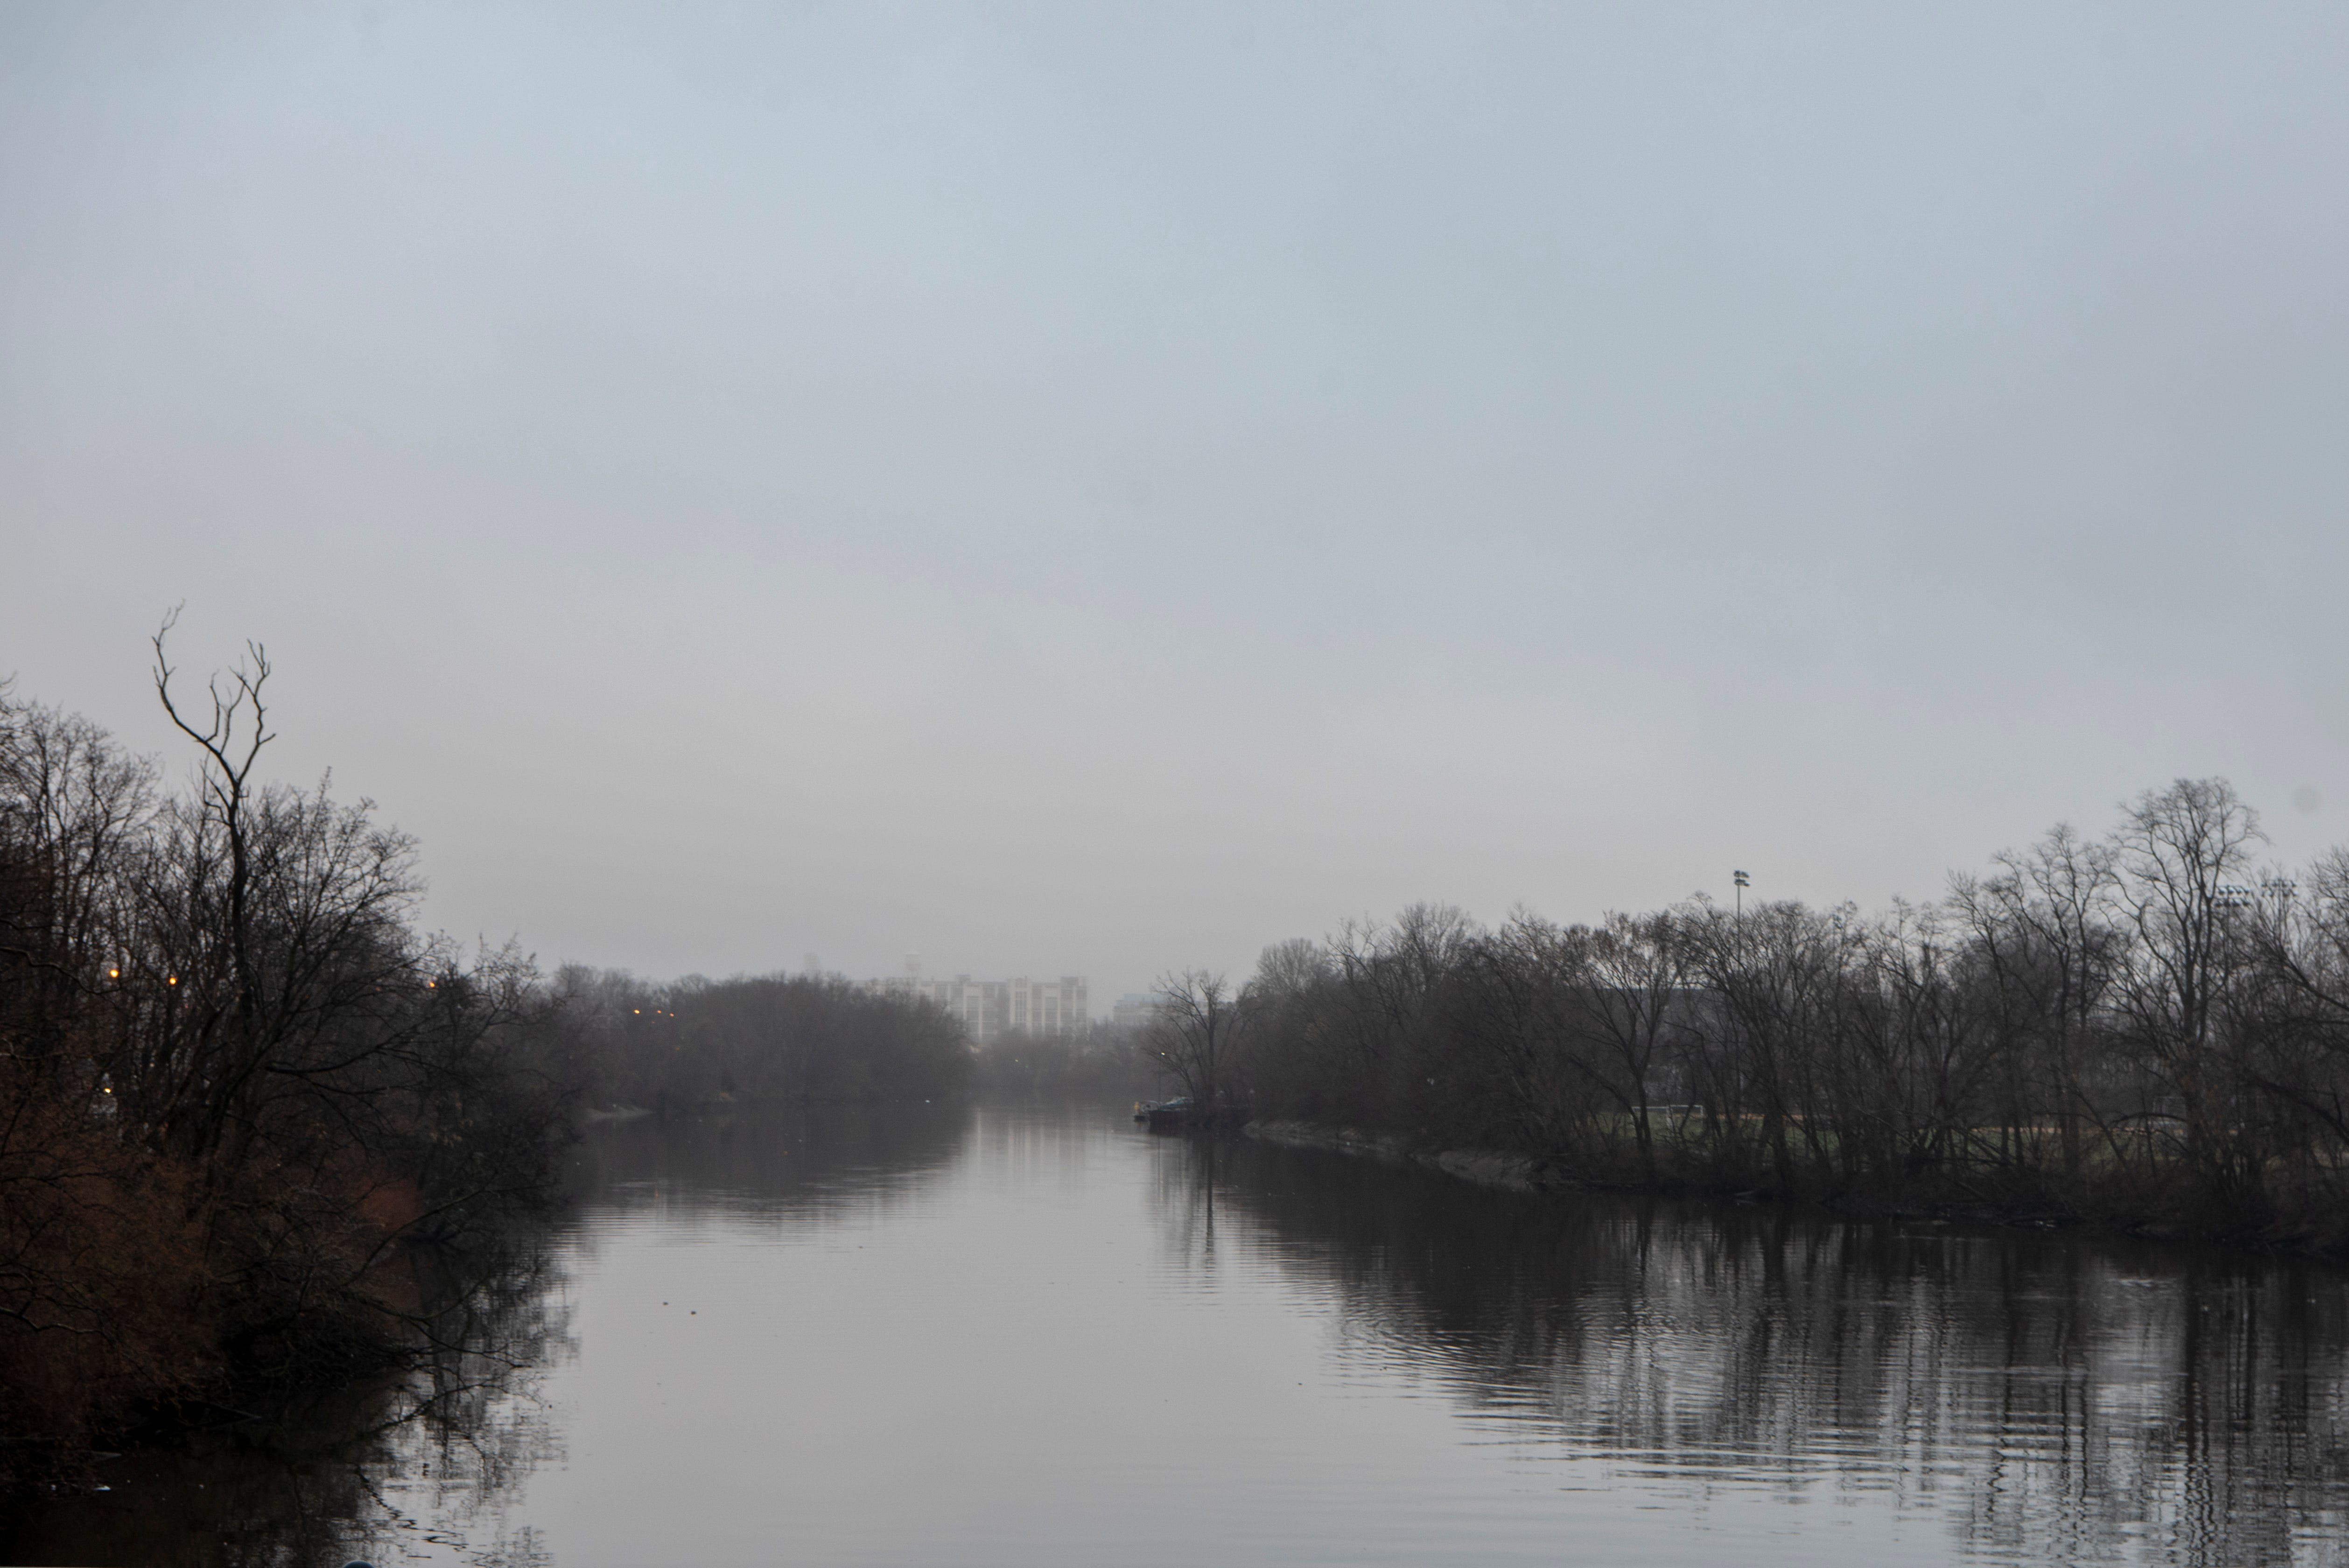 A foggy morning on the Passaic River on Thursday, March 25, 2021. The city of Passaic, previously named Village of Acquackanonk, was named after the river it bordered in 1854.